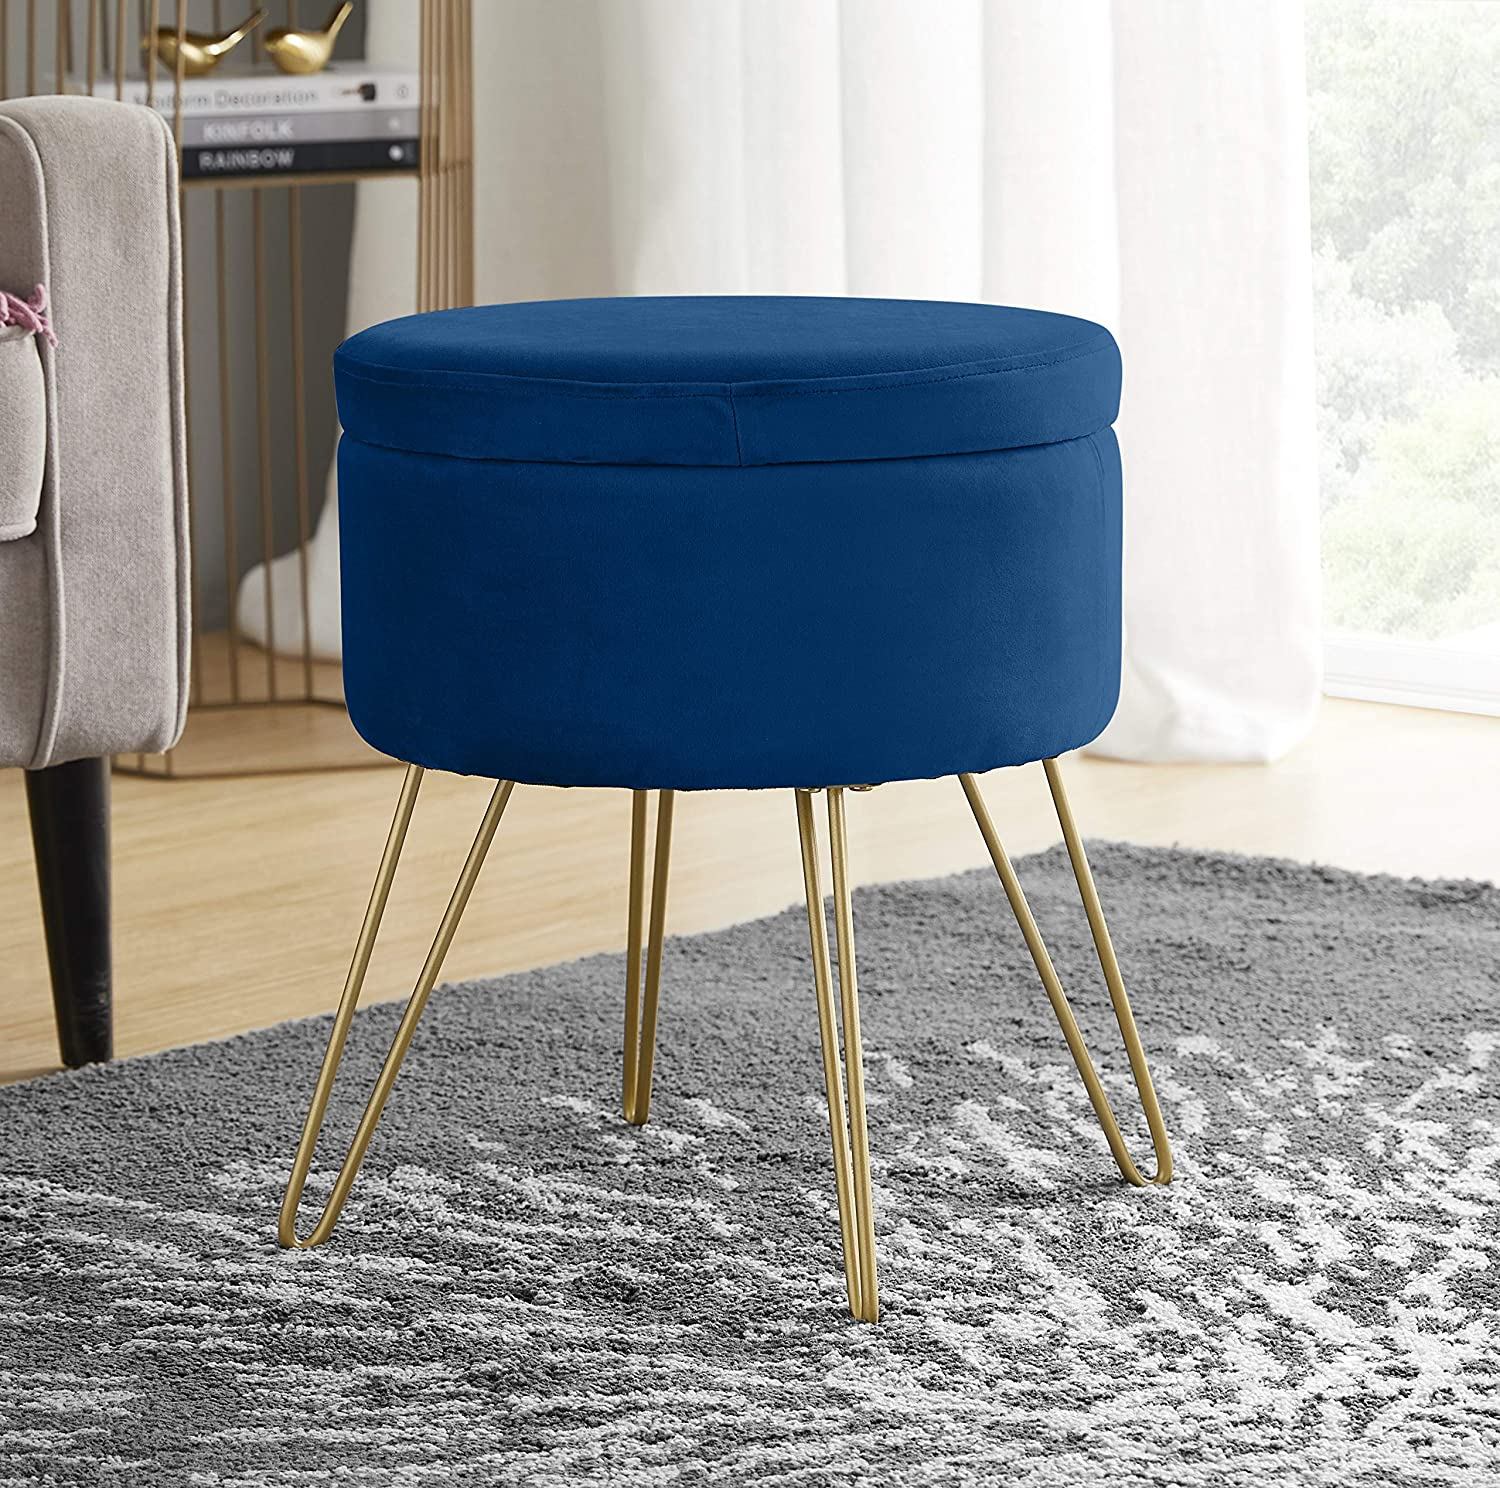 Ornavo Home Modern Round Velvet Storage Ottoman Foot Rest Vanity Stool/Seat with Gold Metal Legs & Tray Top Coffee Table - Navy